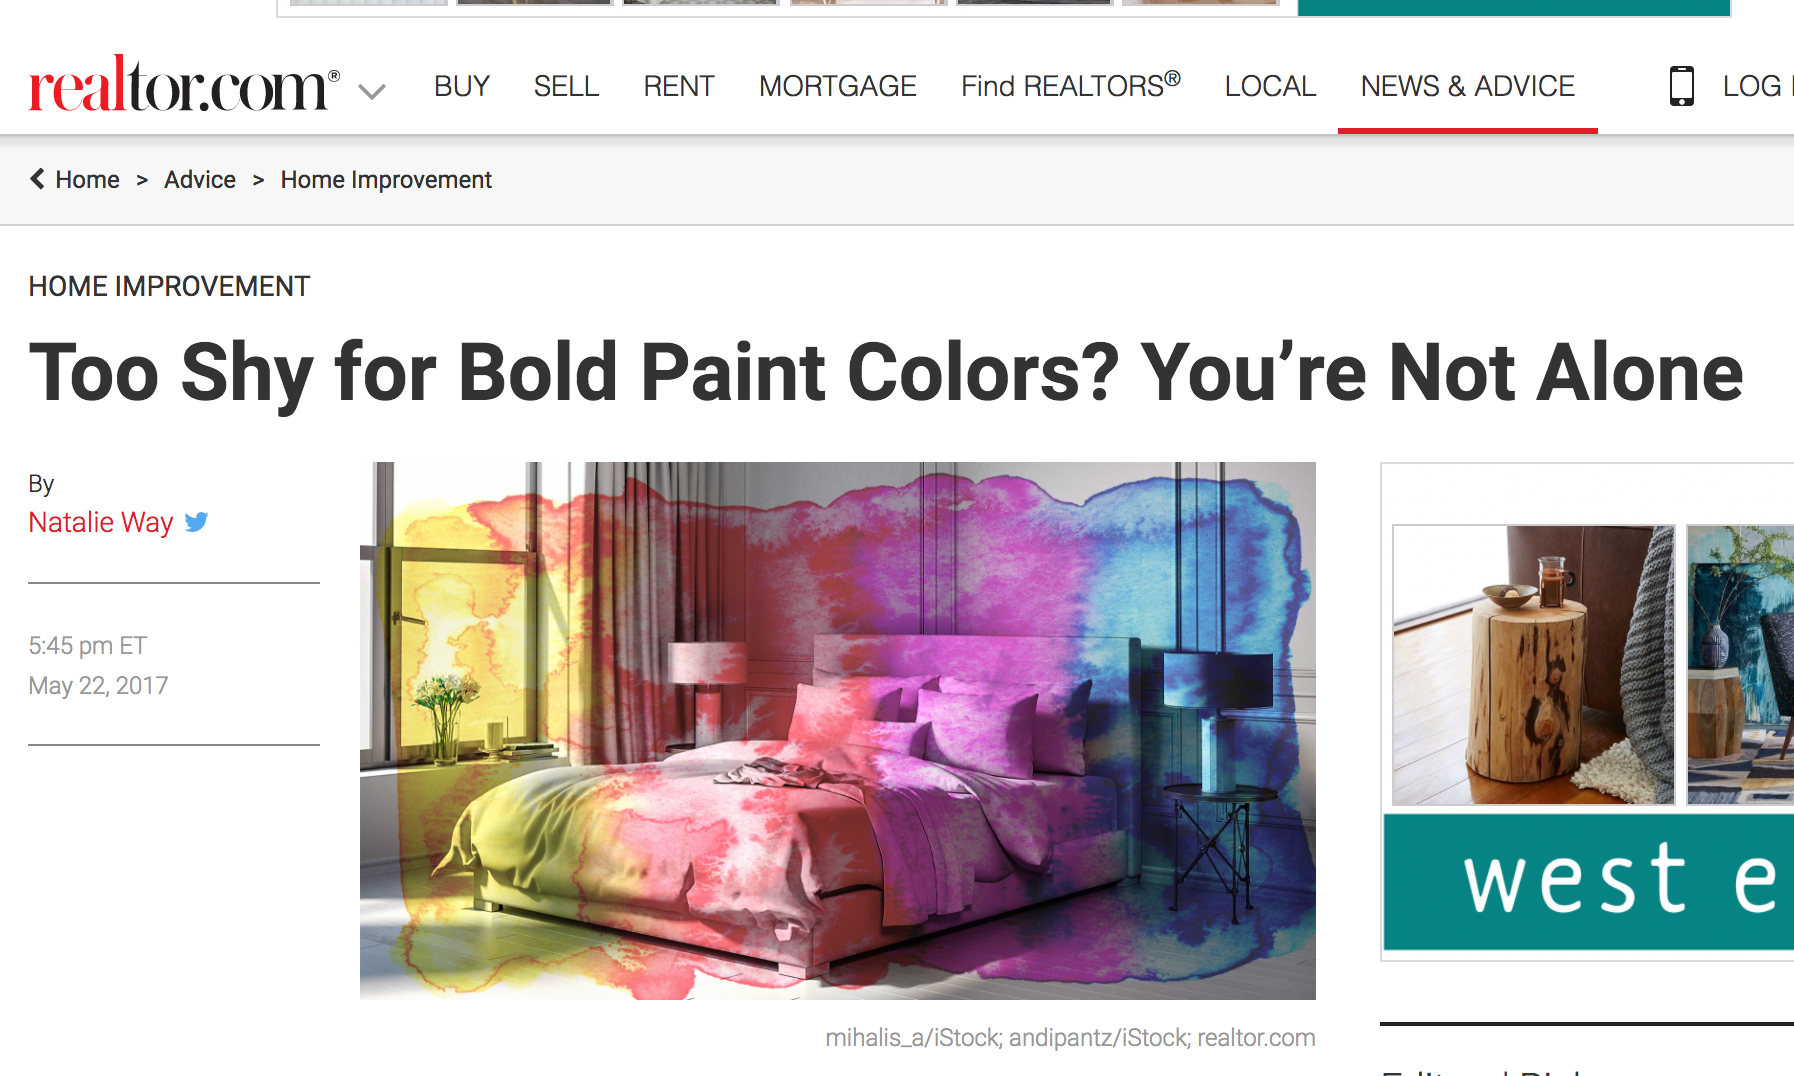 REALTOR.COM :  Danielle is a go-to Interior Design expert regularly interviewed on design trends. In this case, on the use of bold colors!